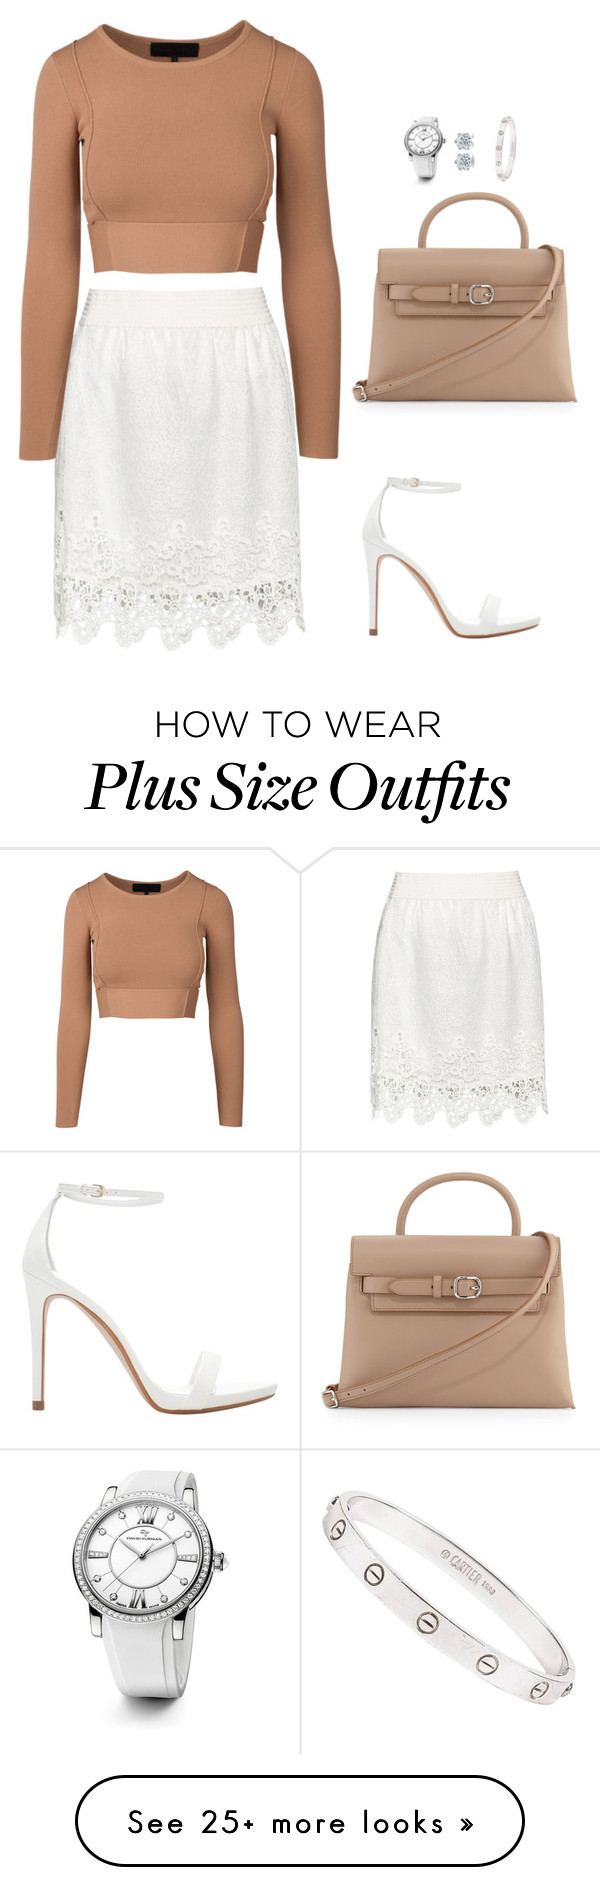 """Untitled #453"" by hayleyl22 on Polyvore featuring Zizzi, Alexander Wang, Zara, David Yurman and Cartier"